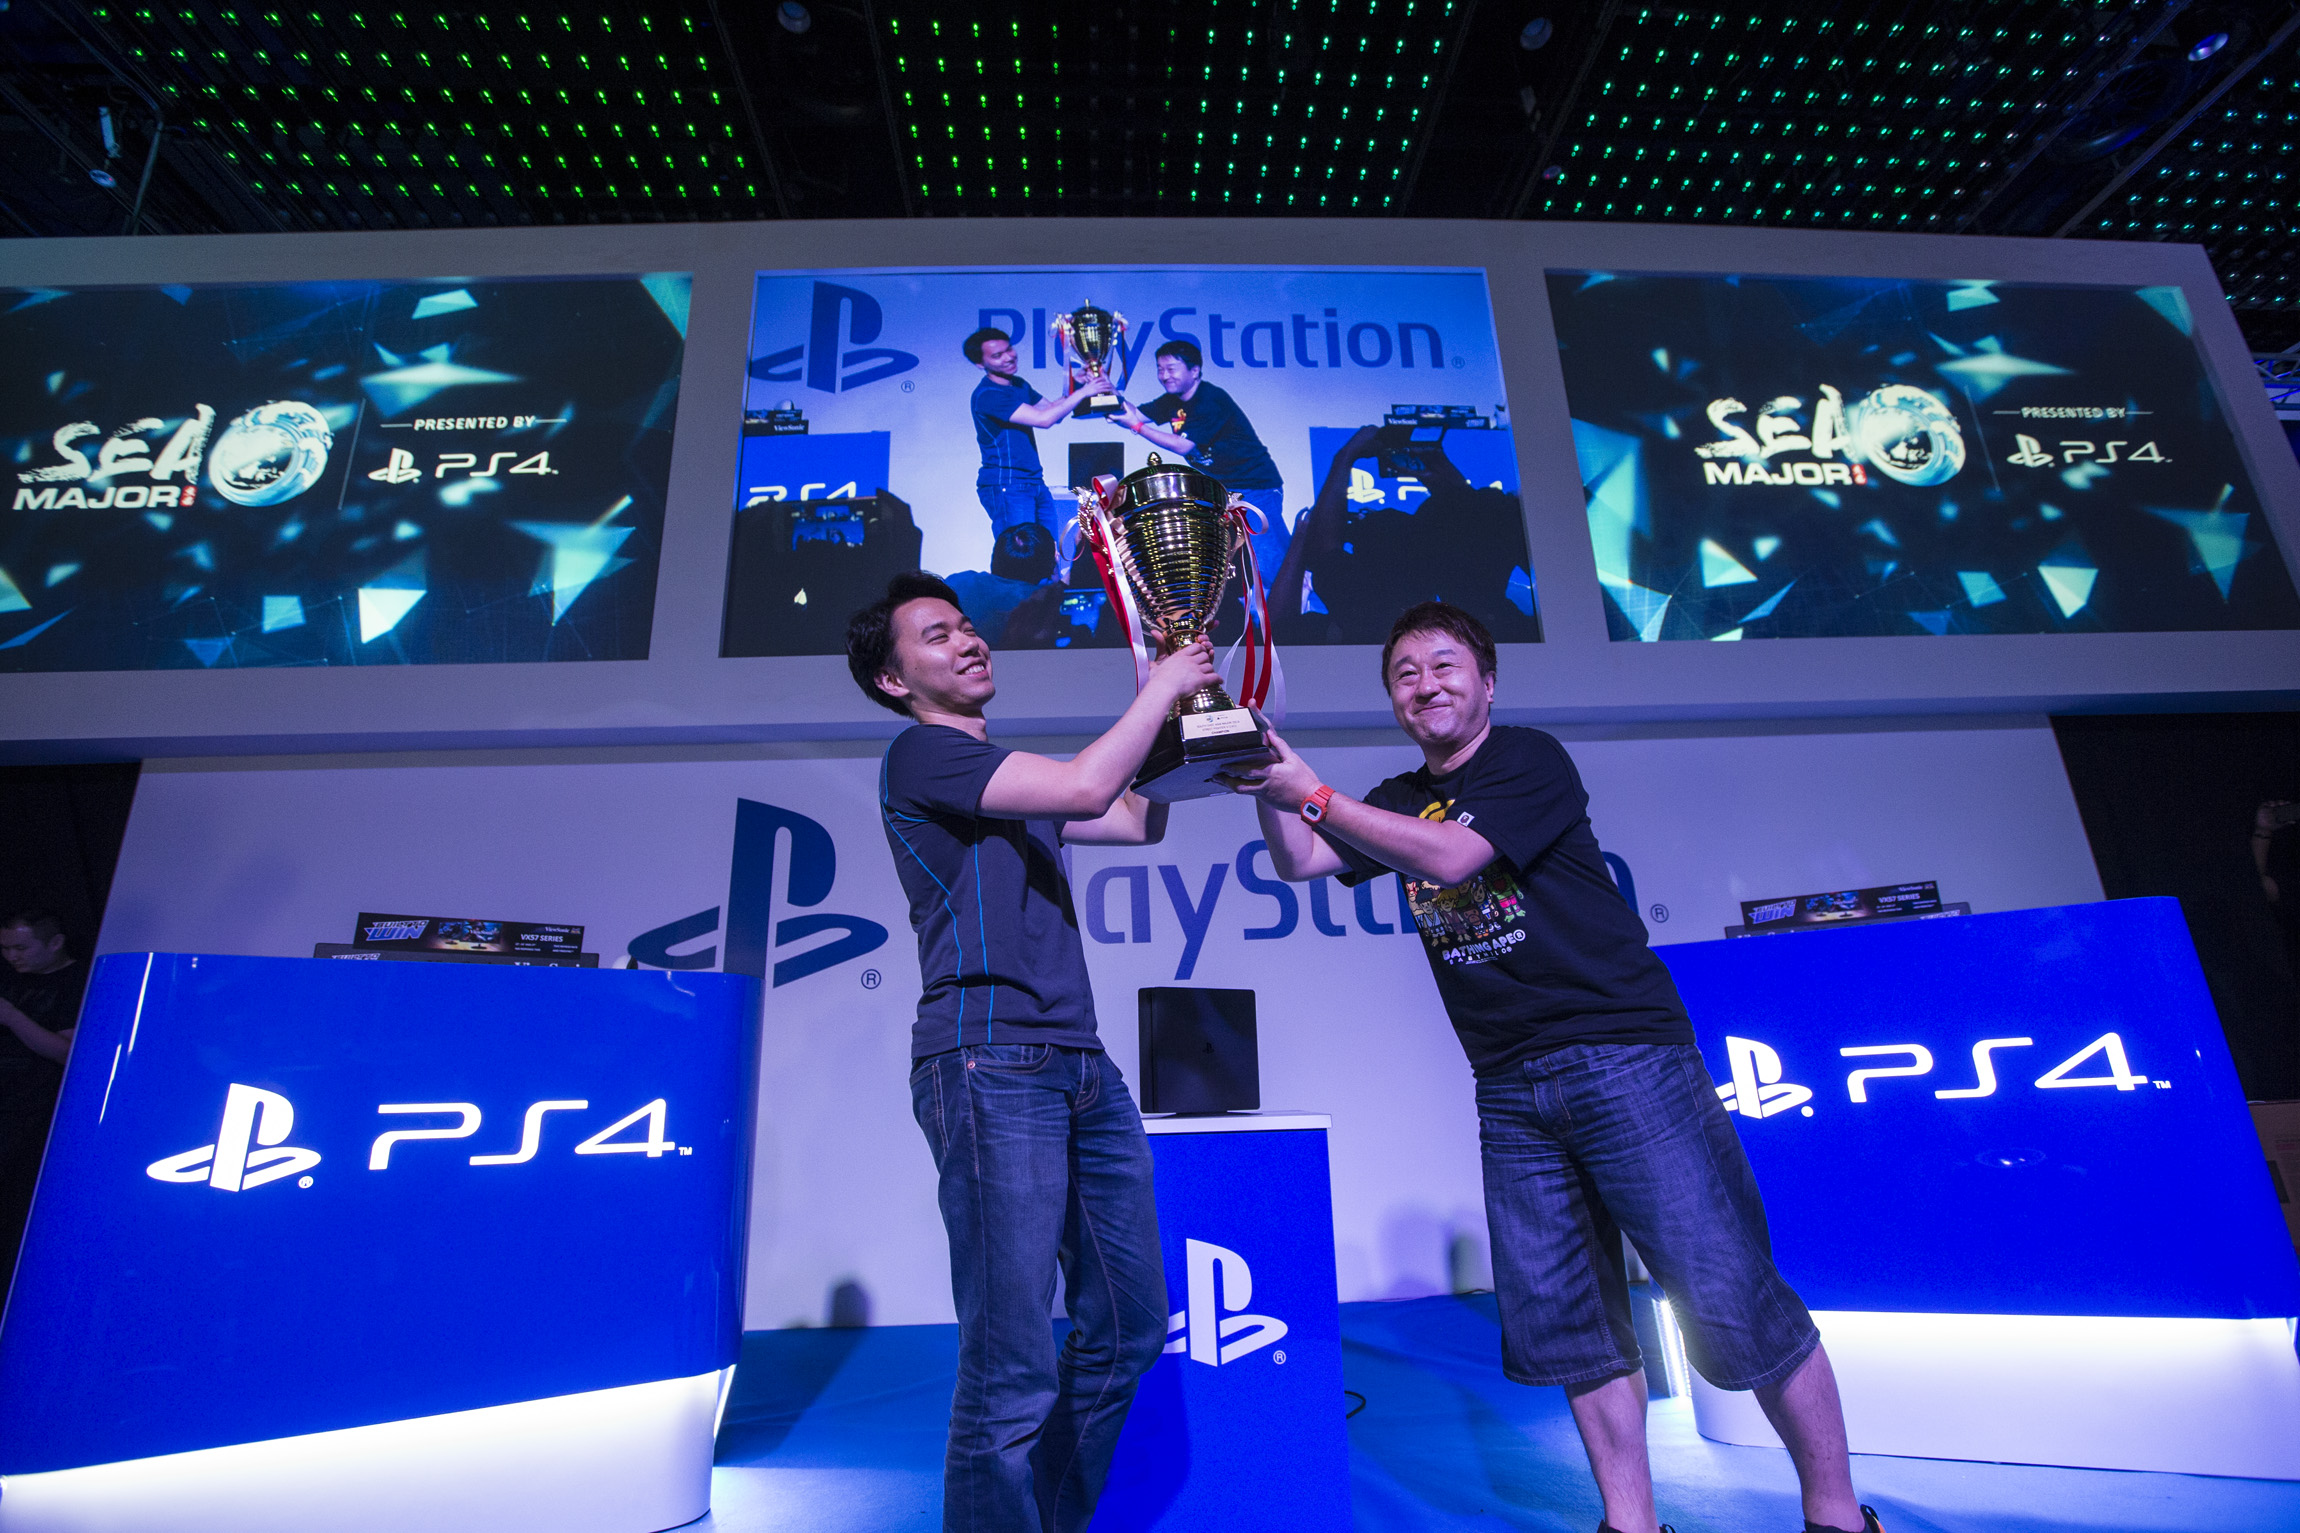 Tokido, winner of SEAM 2016 Street Fighter V, awarded by Ono Yoshinori, Executive Producer